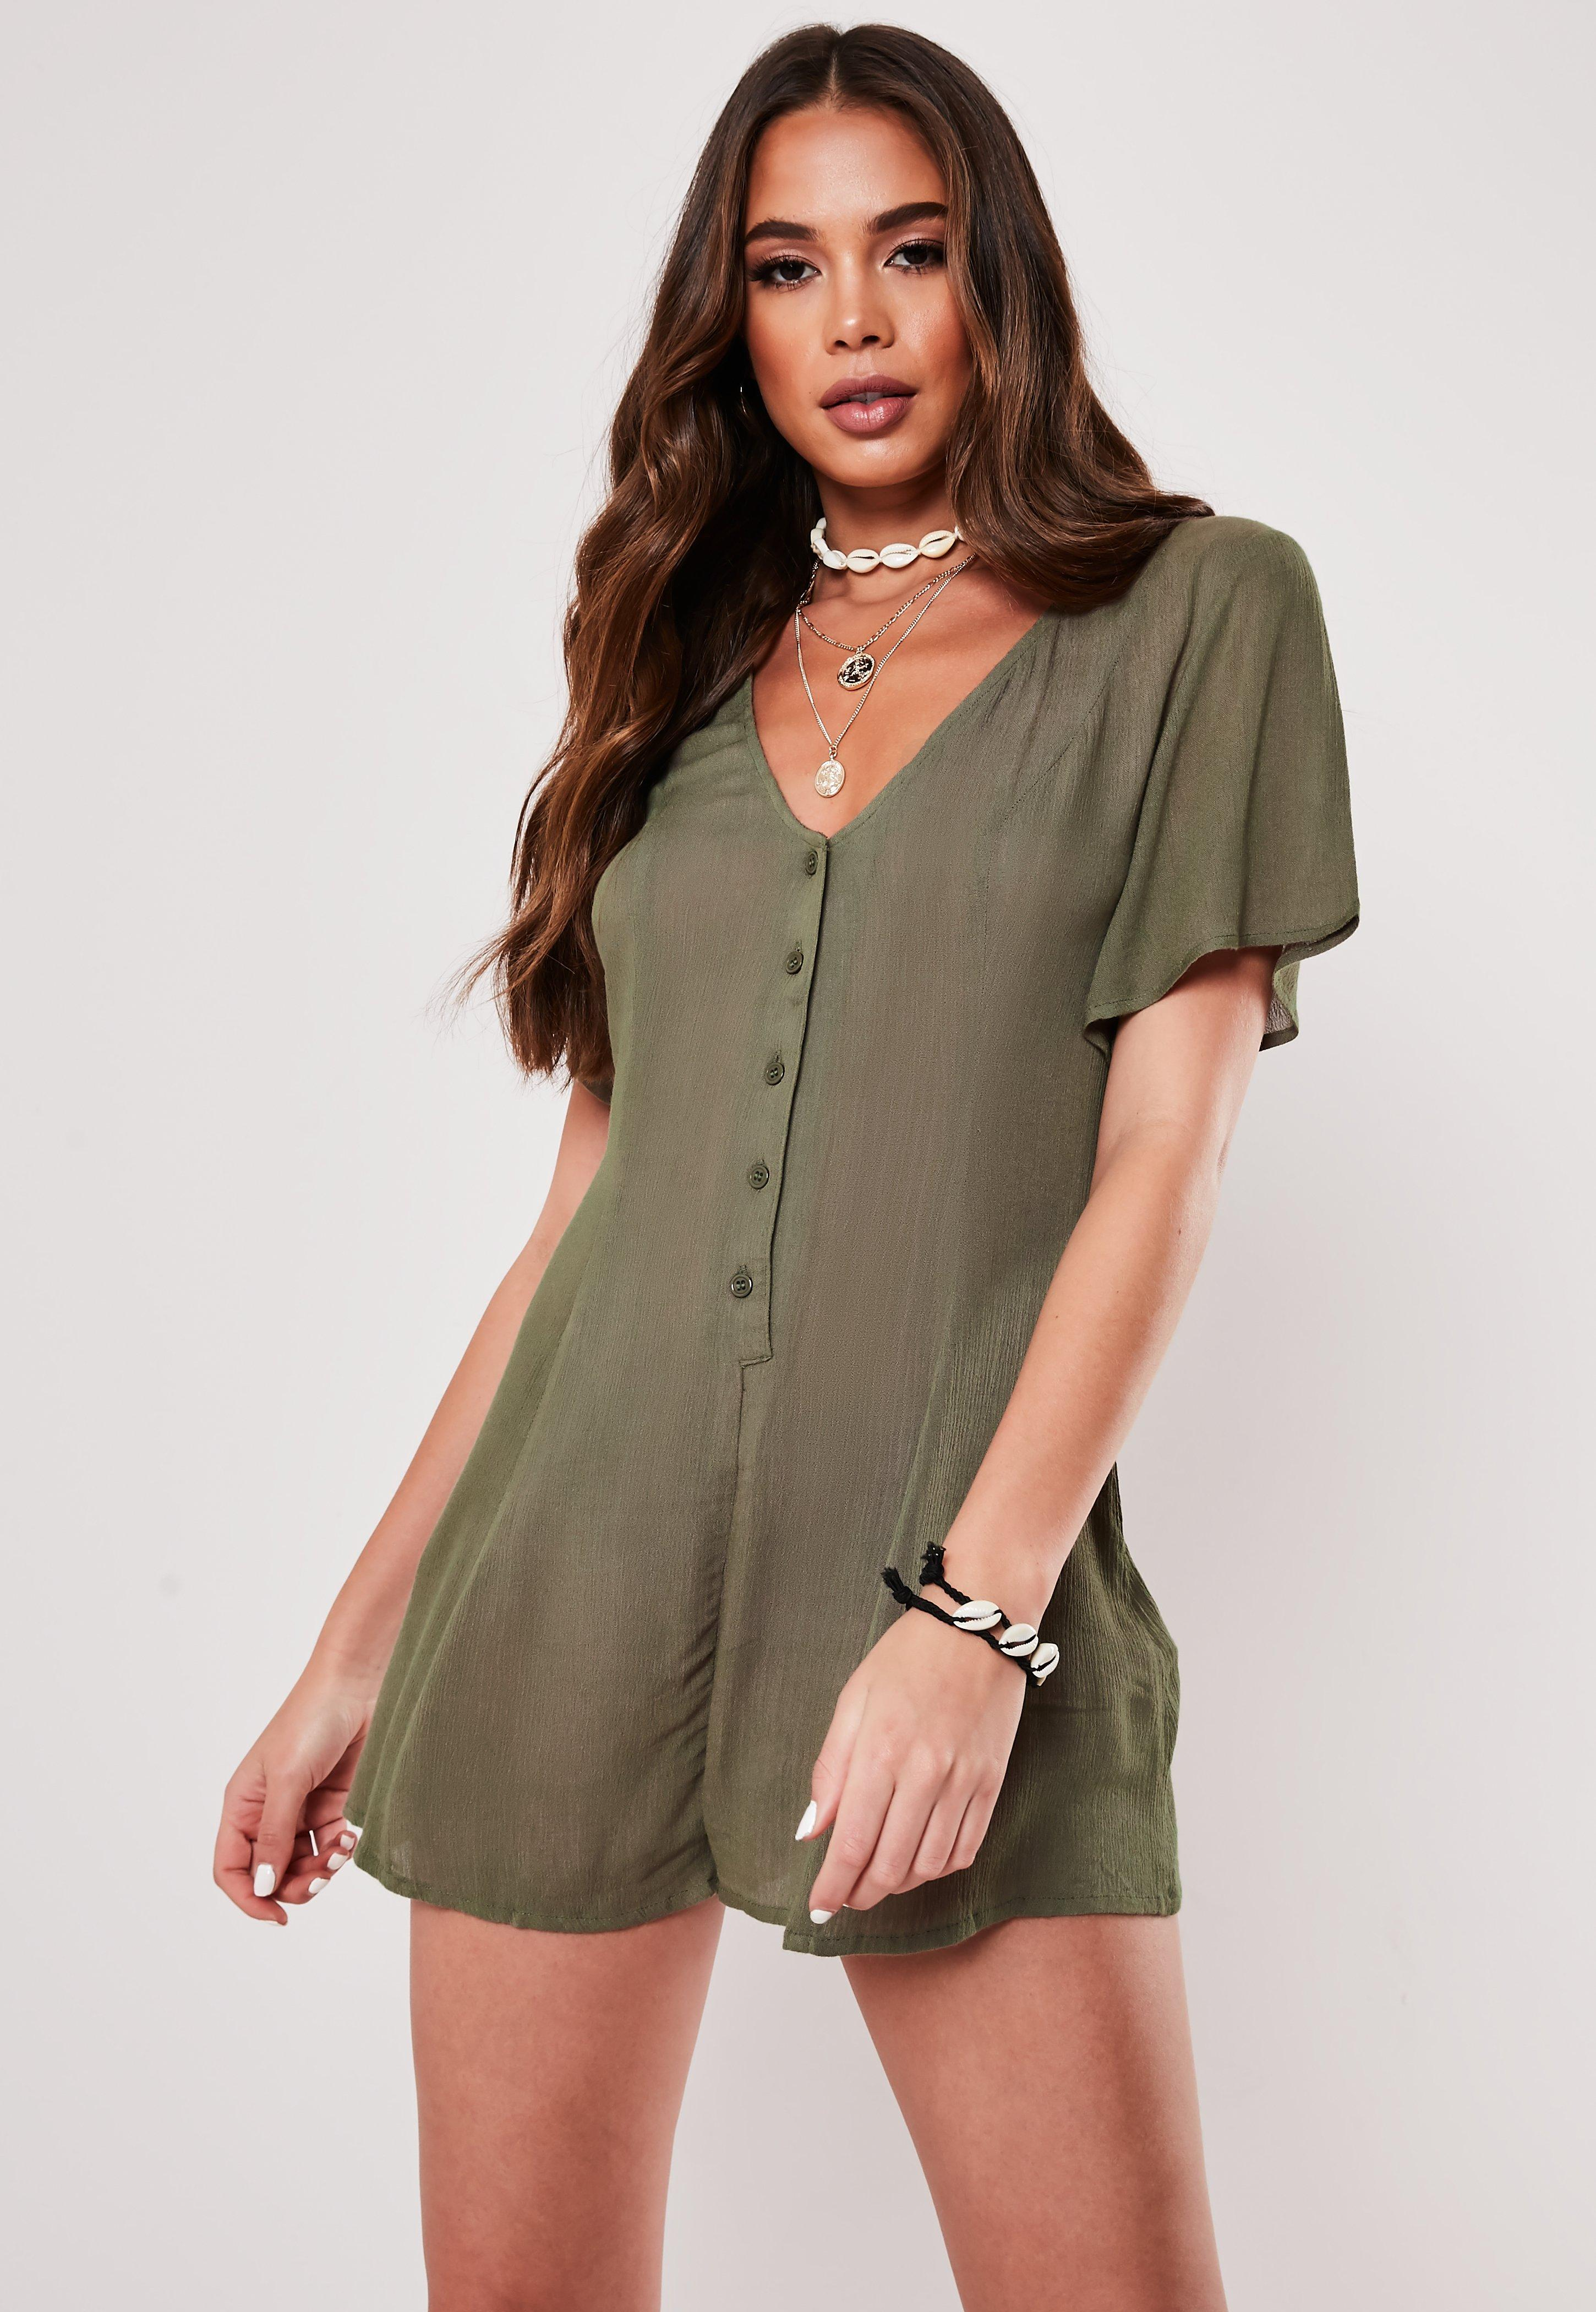 c7397c20 Rompers for Women - off the Shoulder Rompers 2019 | Missguided